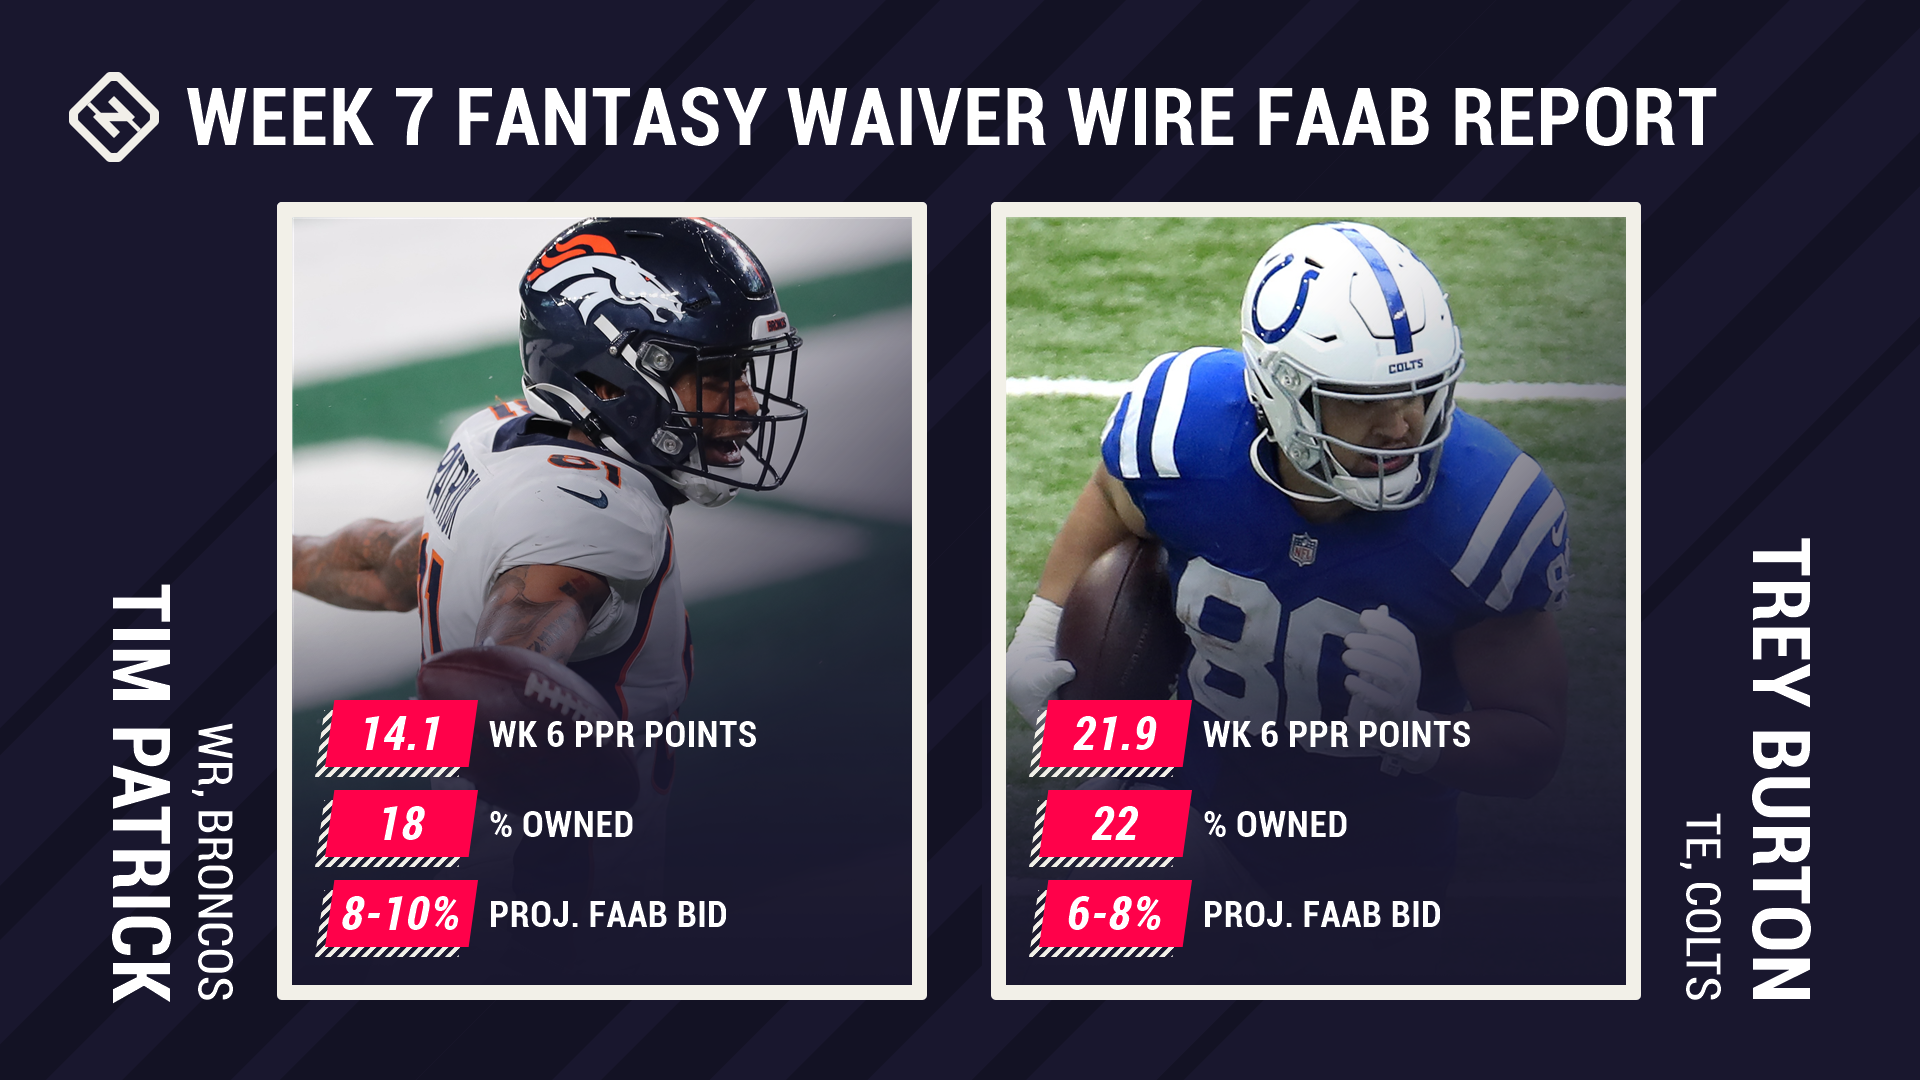 Fantasy Waiver Wire Faab Report For Week 7 Pickups Free Agents Sporting News